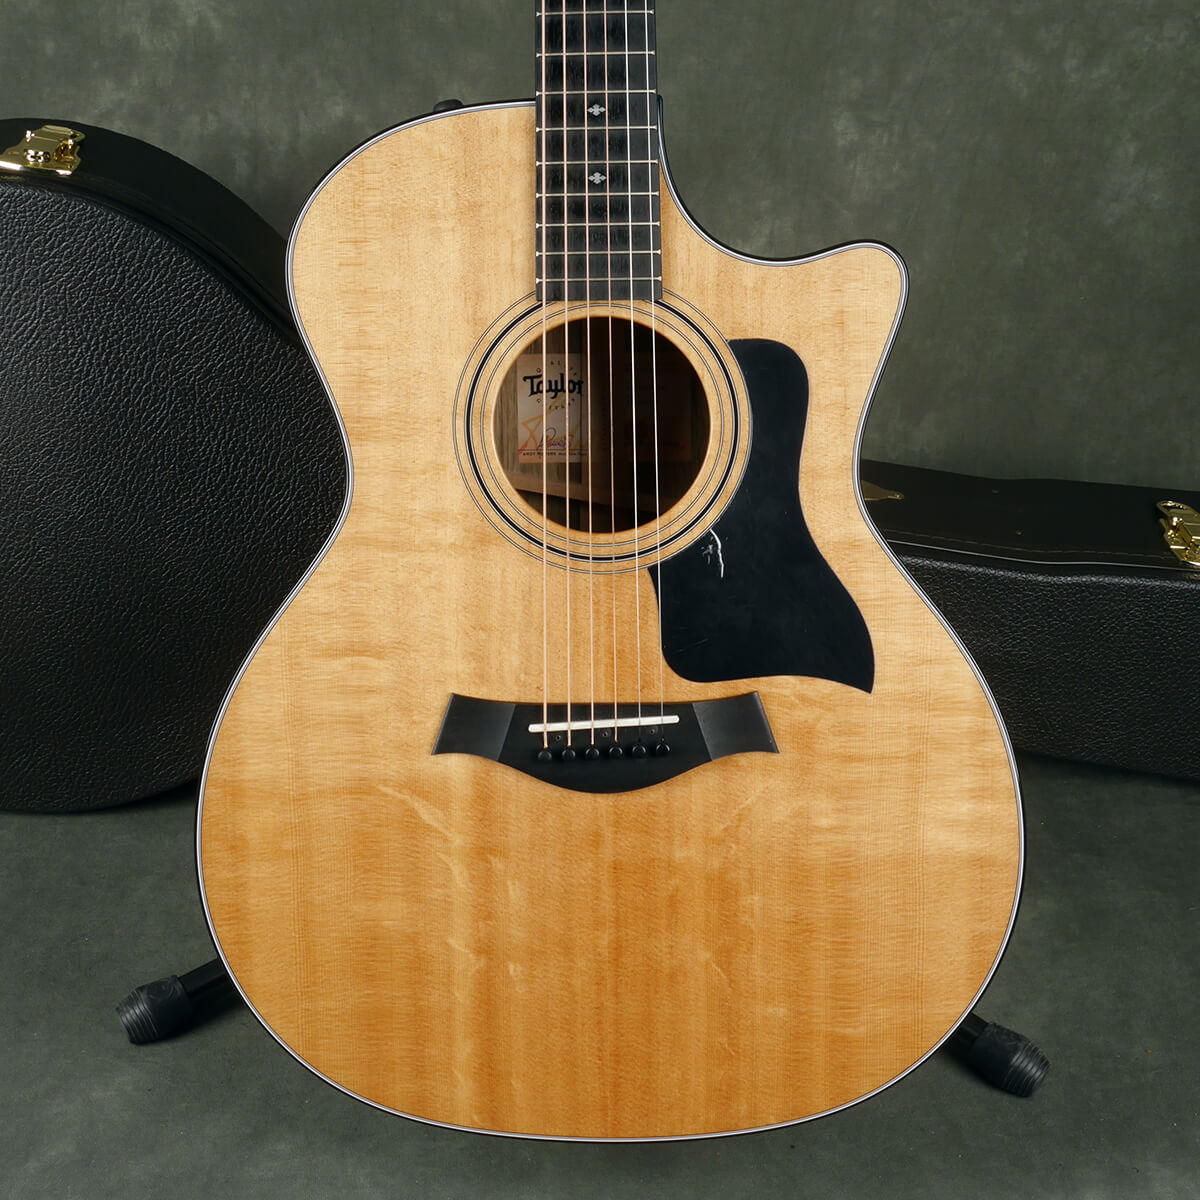 Taylor 414ce Limited Edition  Guitar - Natural  - Black limba - Case - 2nd Hand